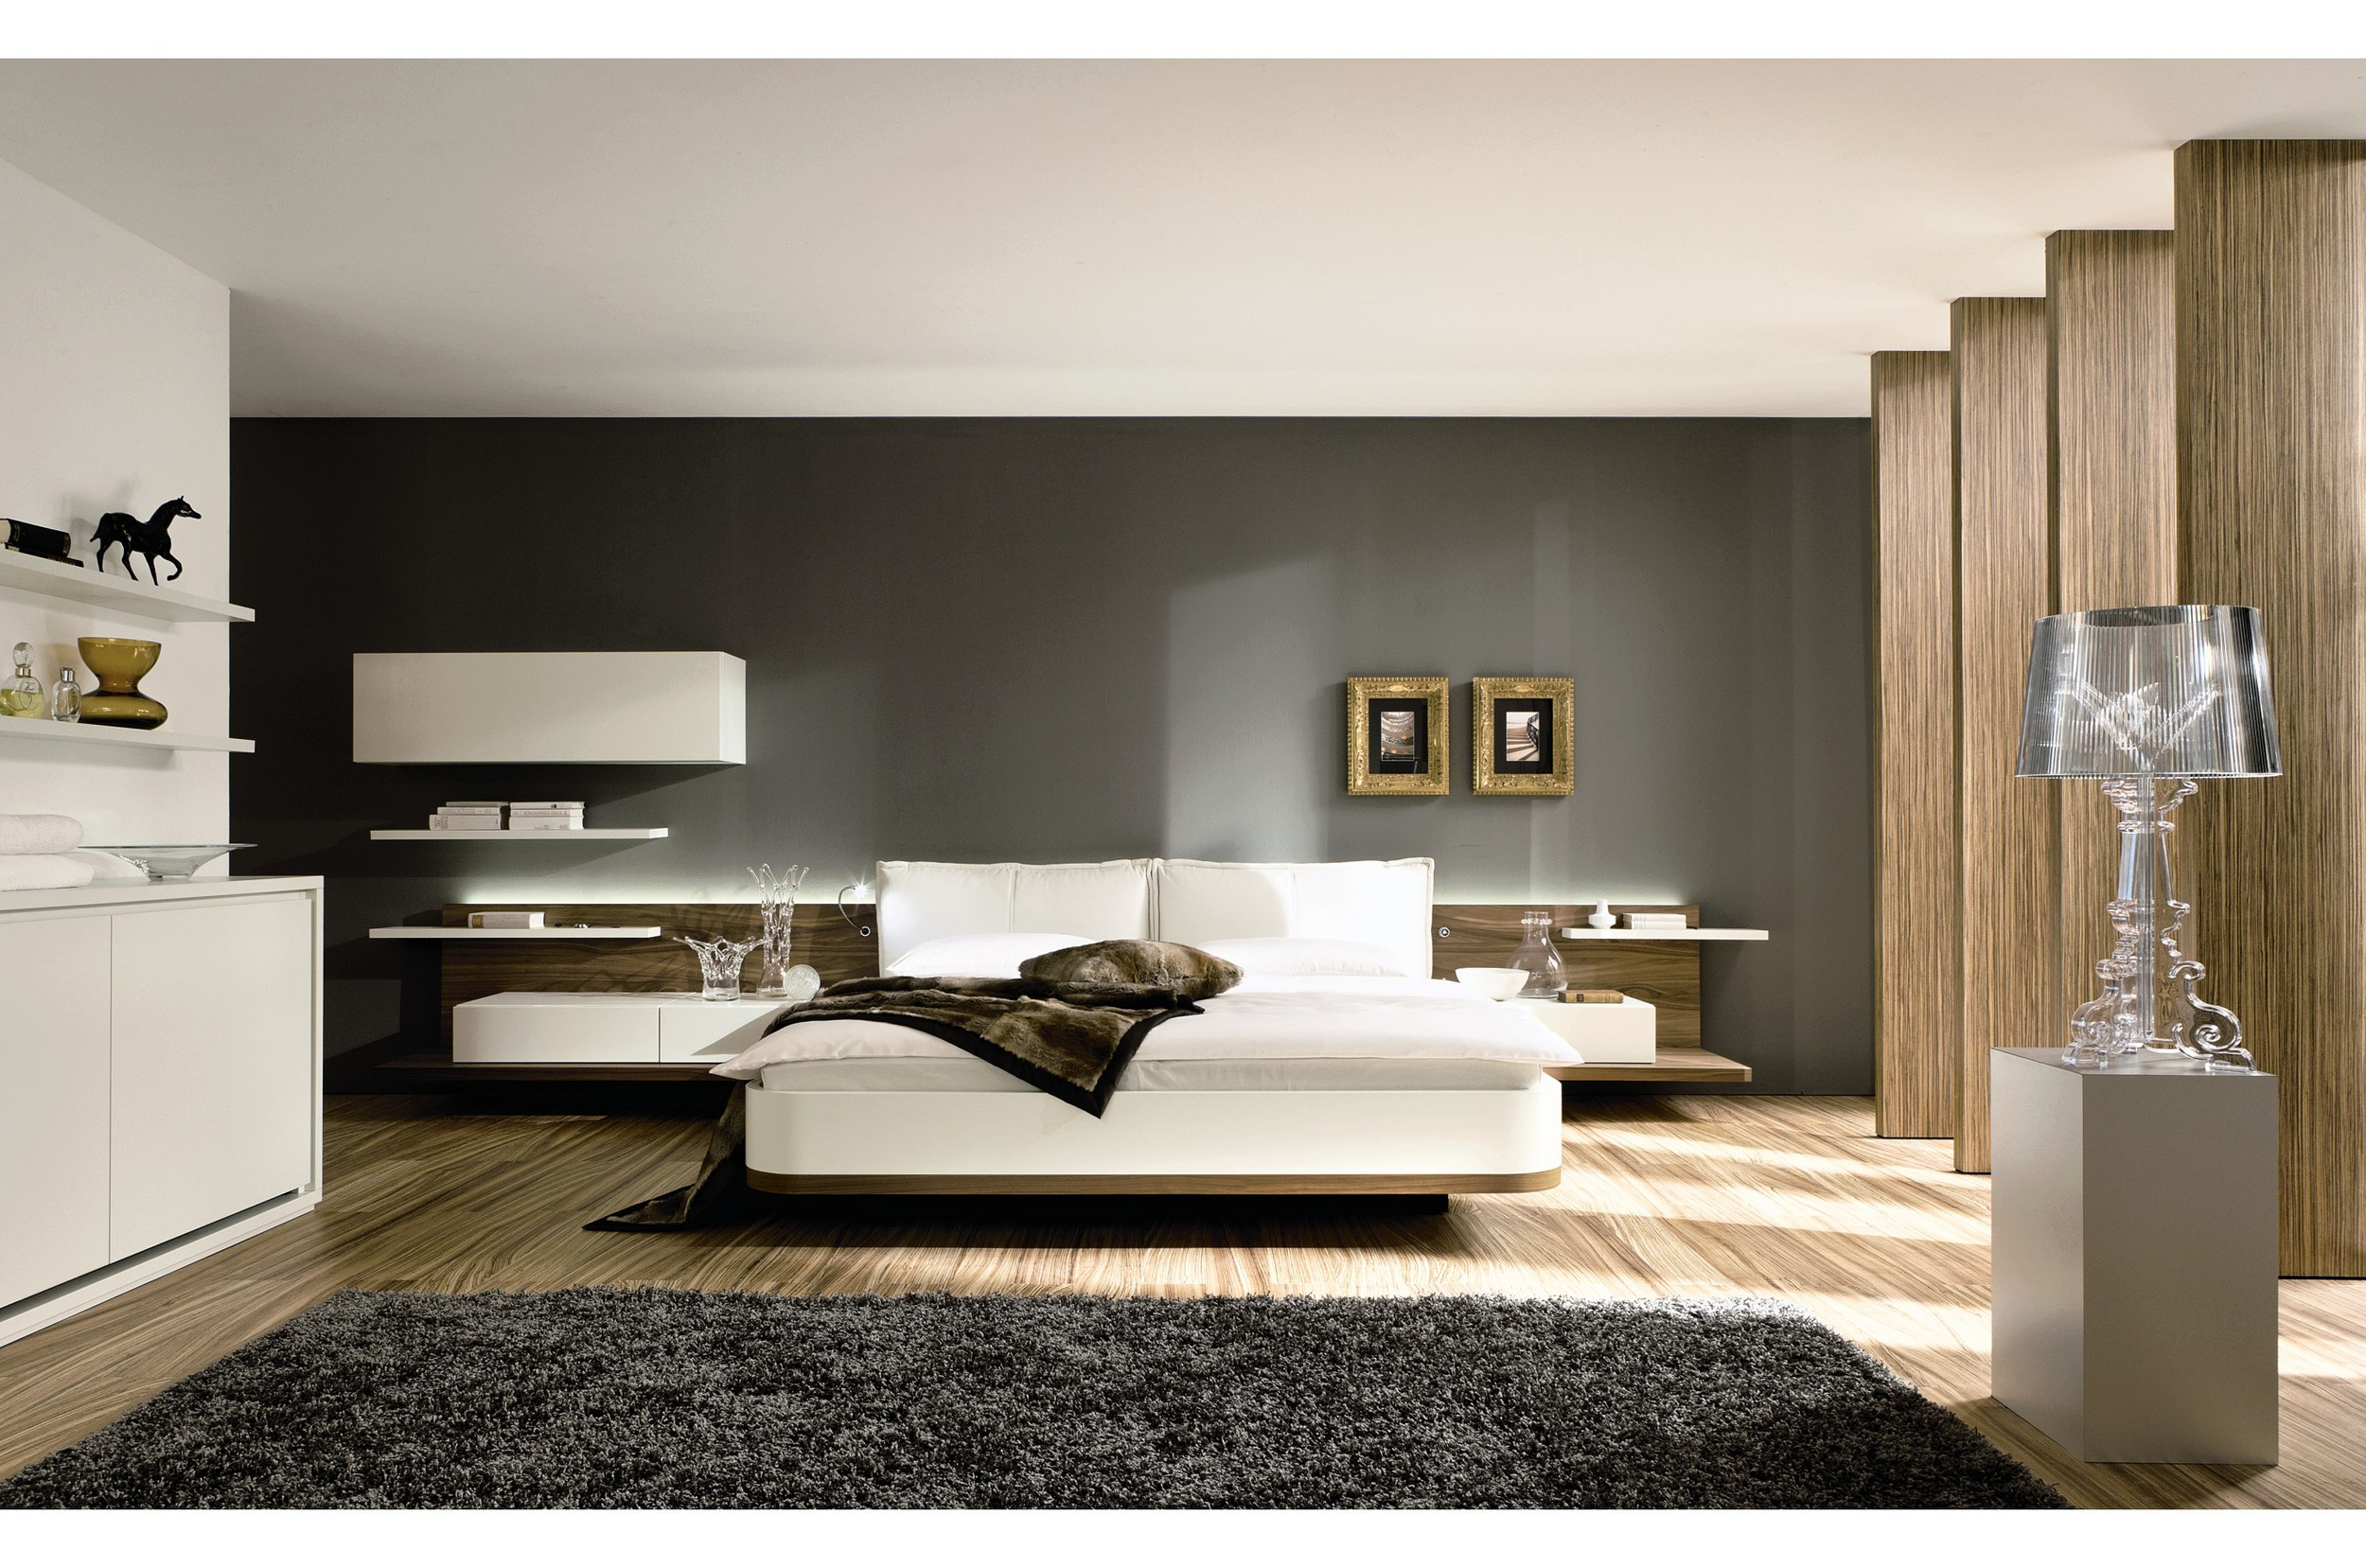 Ikea-Bedroom-Interior-Design-Ideas-The-Home-Sitter.jpg